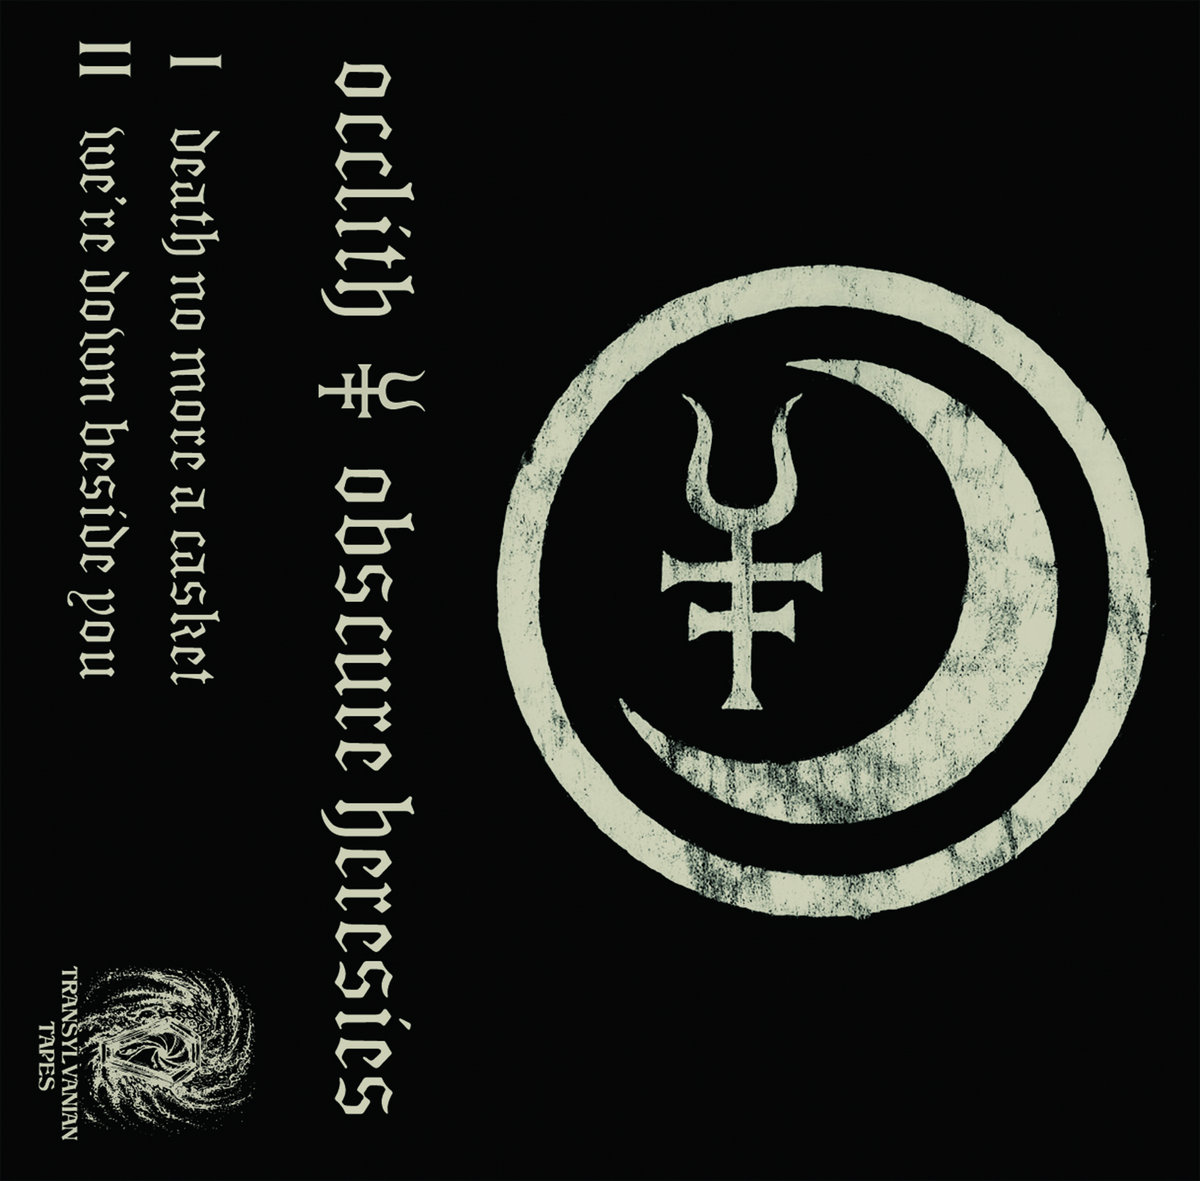 Occlith - Obscure Heresies